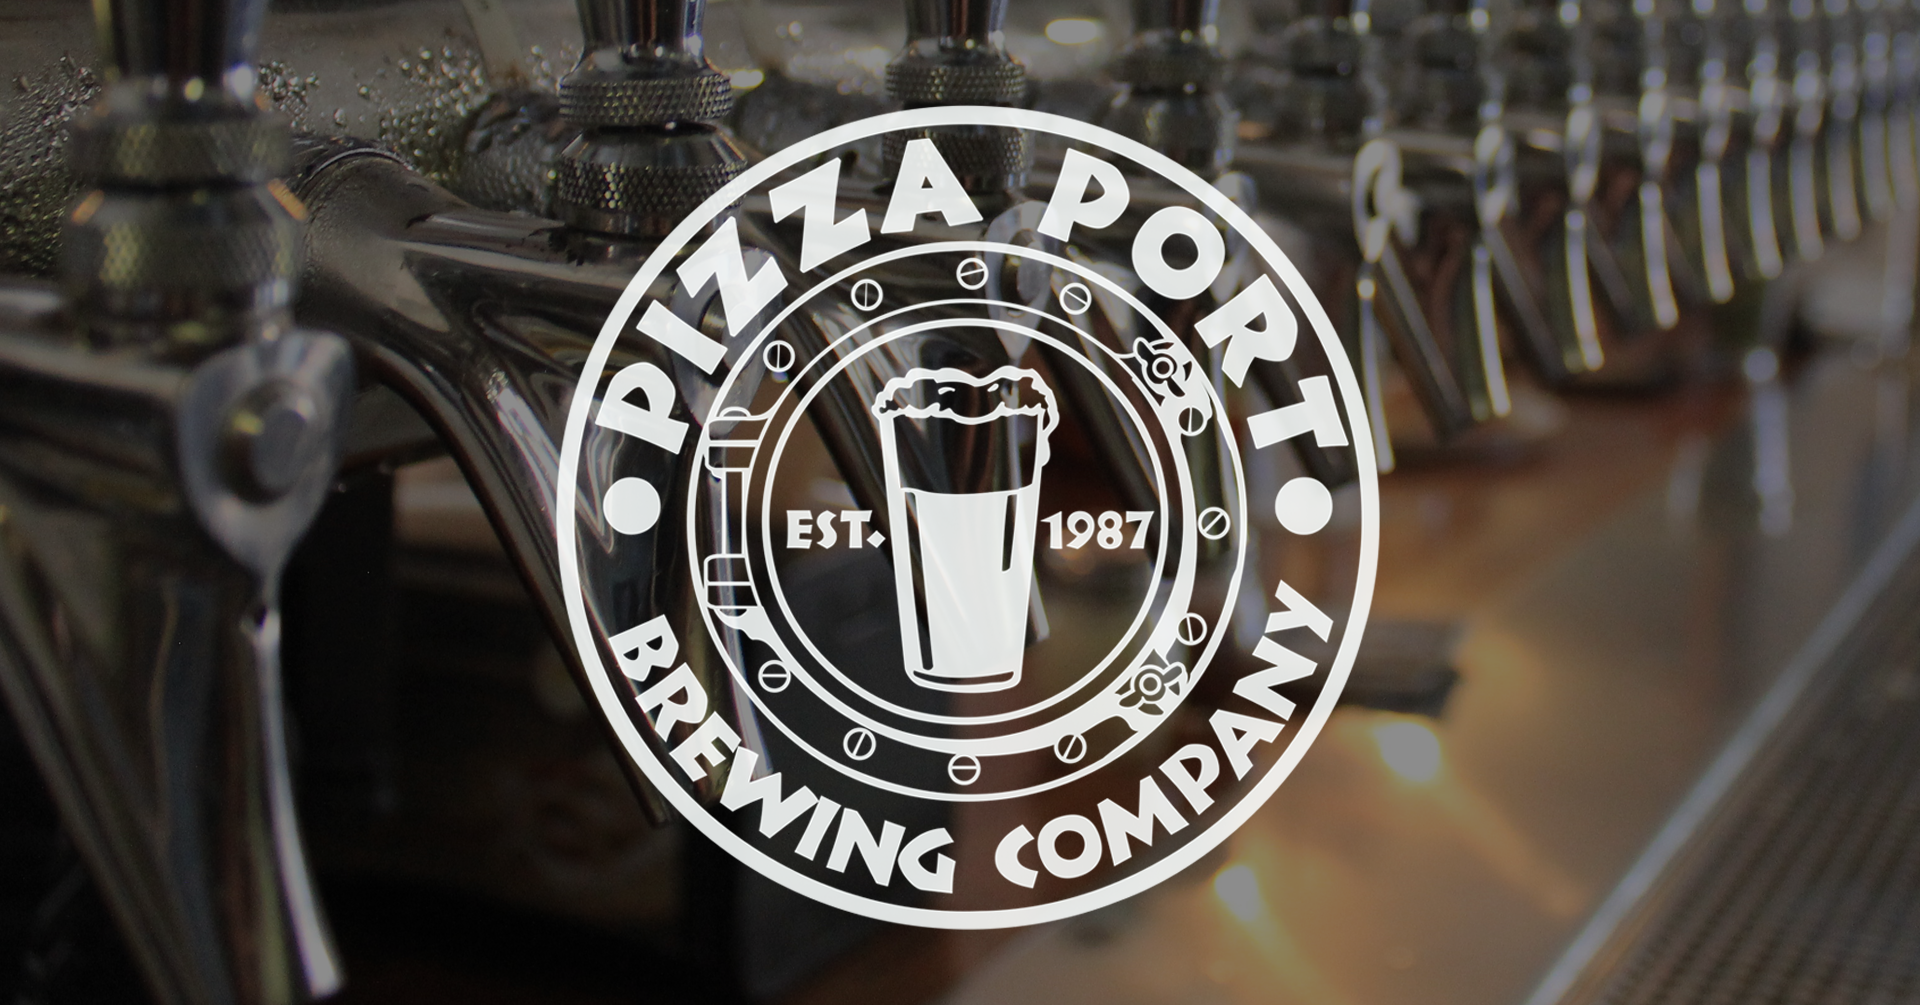 Pizza Port Tap Takeover on the Patio